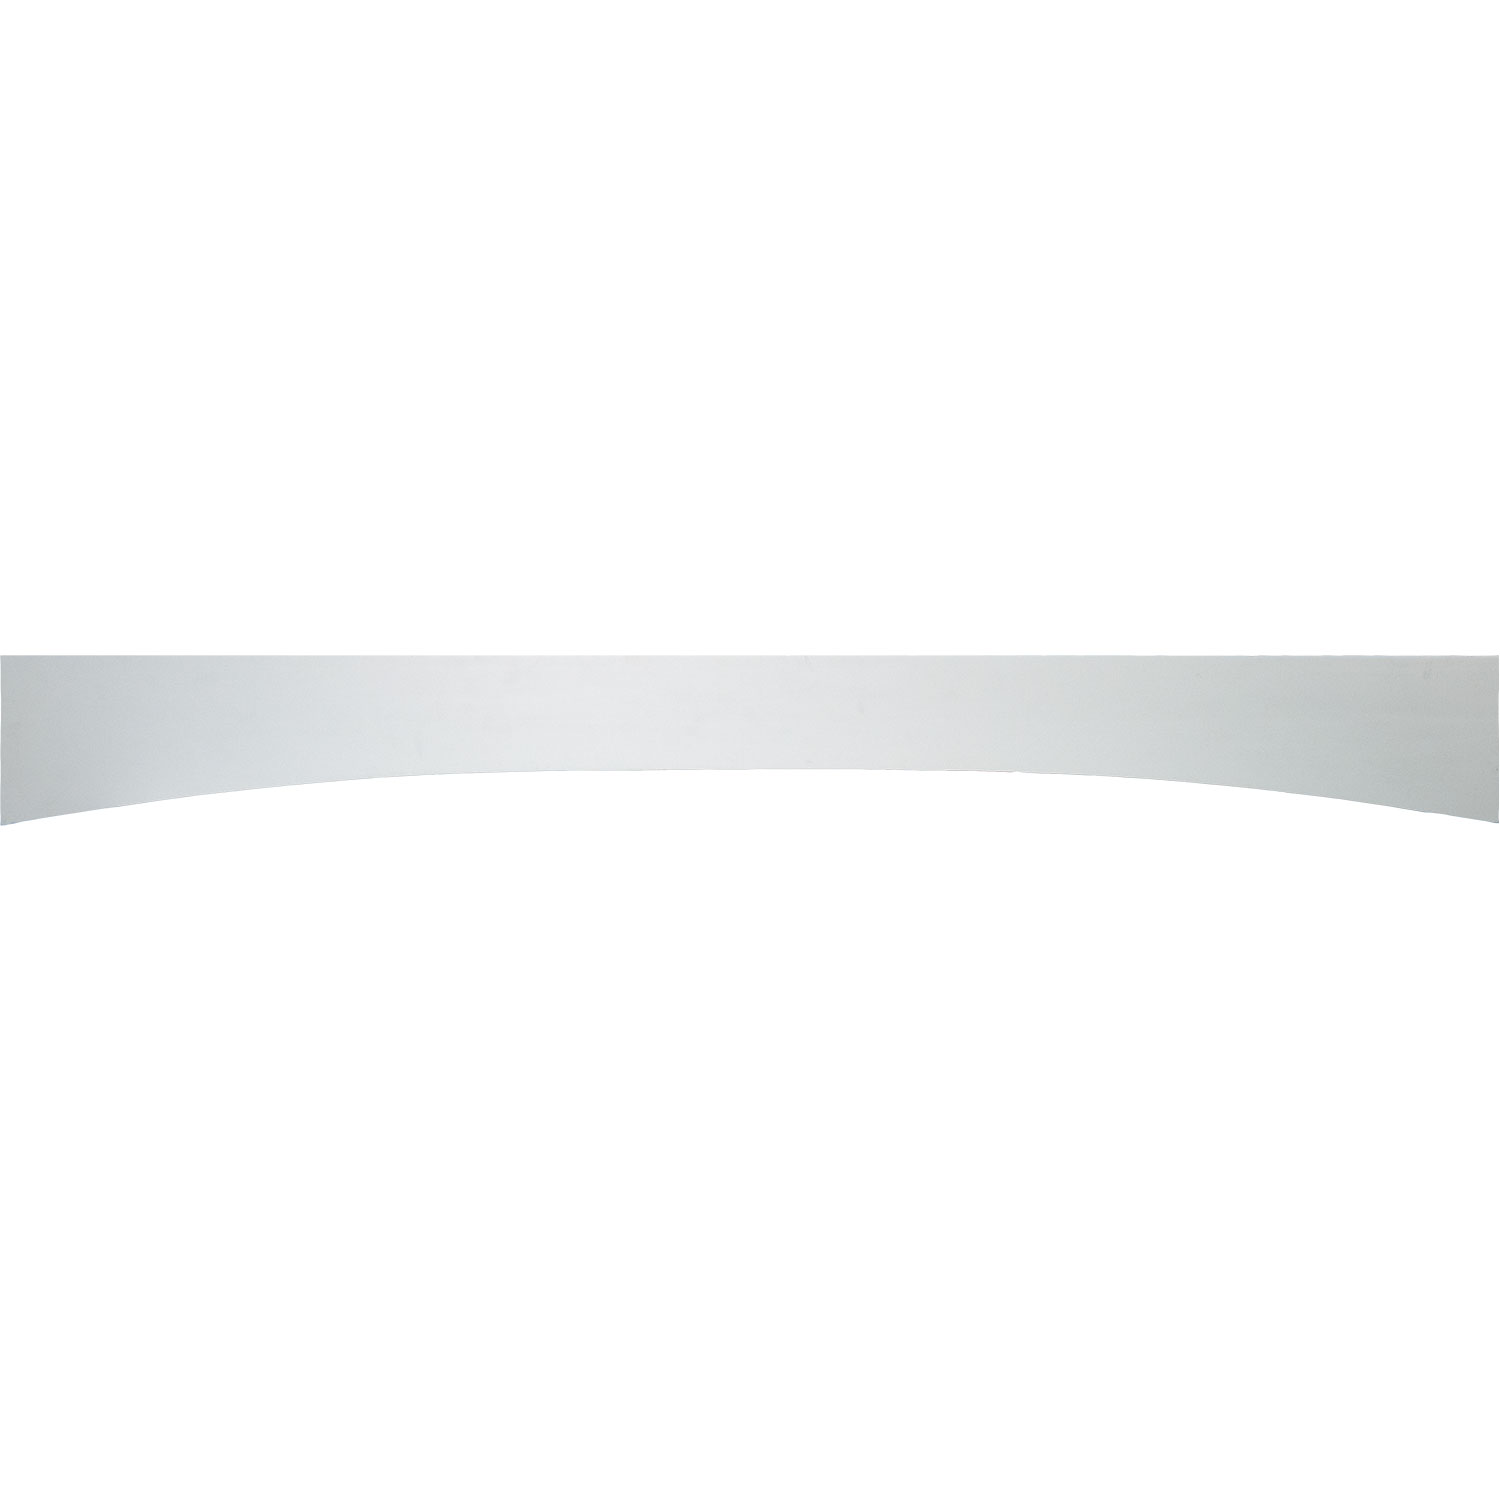 Everyday Cabinets 60-inch White Shaker Arched Valance